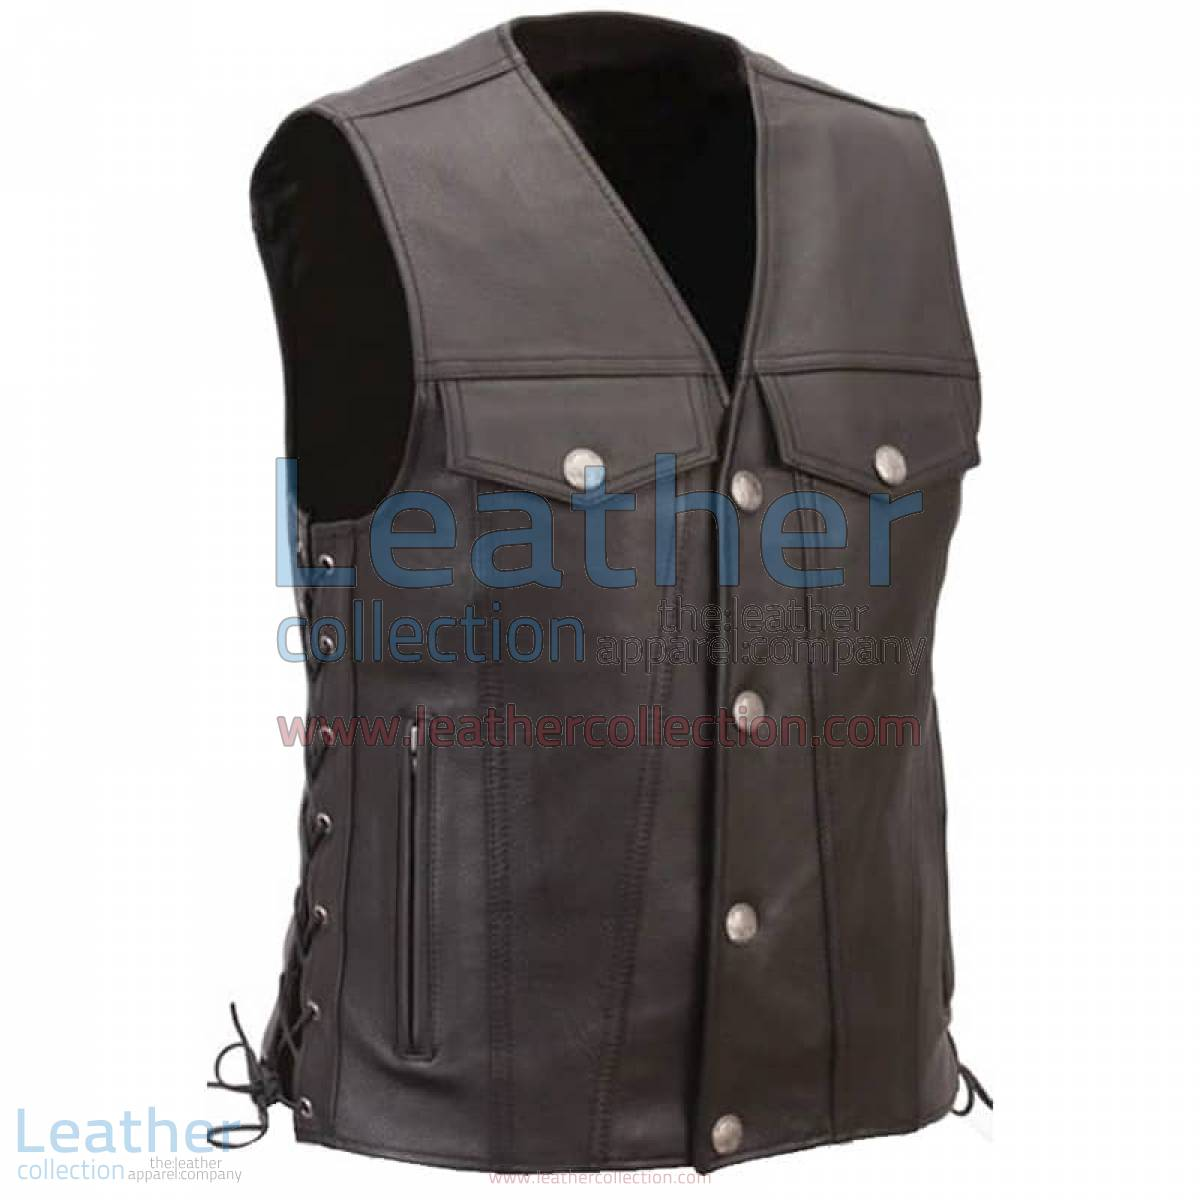 Leather Motorcycle Vest with Buffalo Nickel Snaps | motorcycle vest